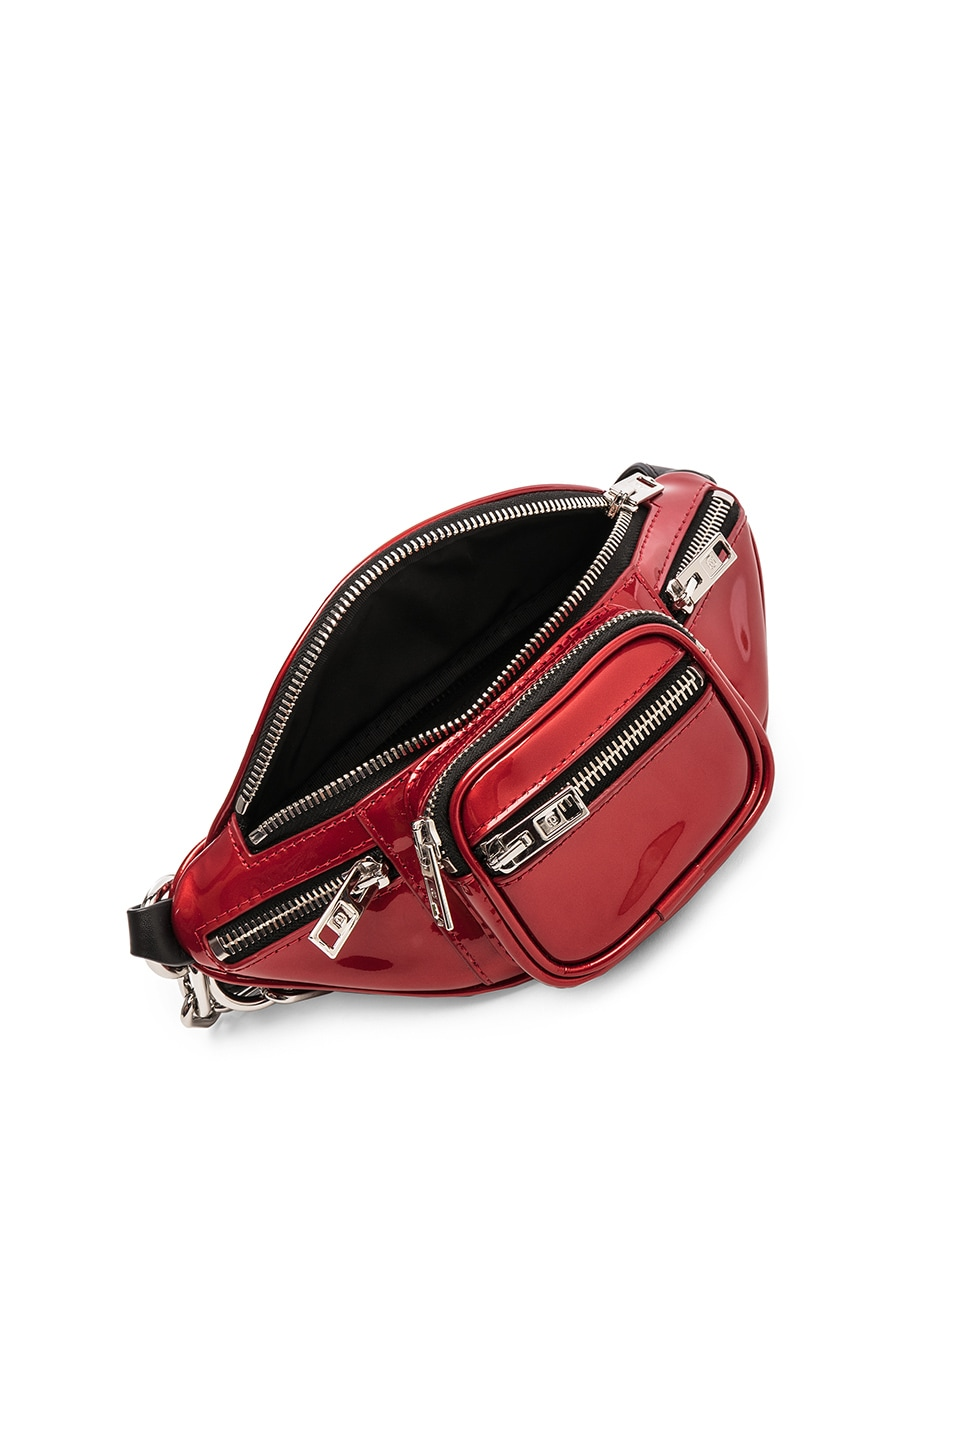 Image 5 of Alexander Wang Attica Patent Mini Fanny Pack in Red